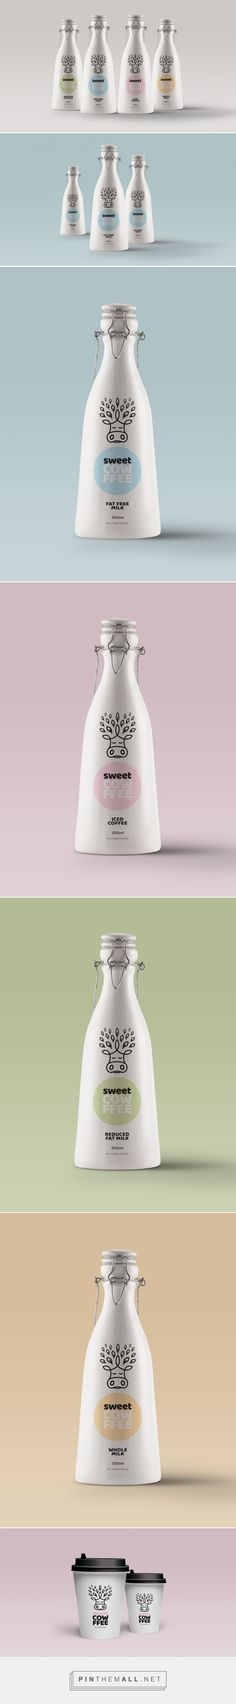 Sweet Cowffee (Concept) - Packaging of the World - Creative Package Design Gallery - http://www.packagingoftheworld.com/2016/11/sweet-cowffee-concept.html